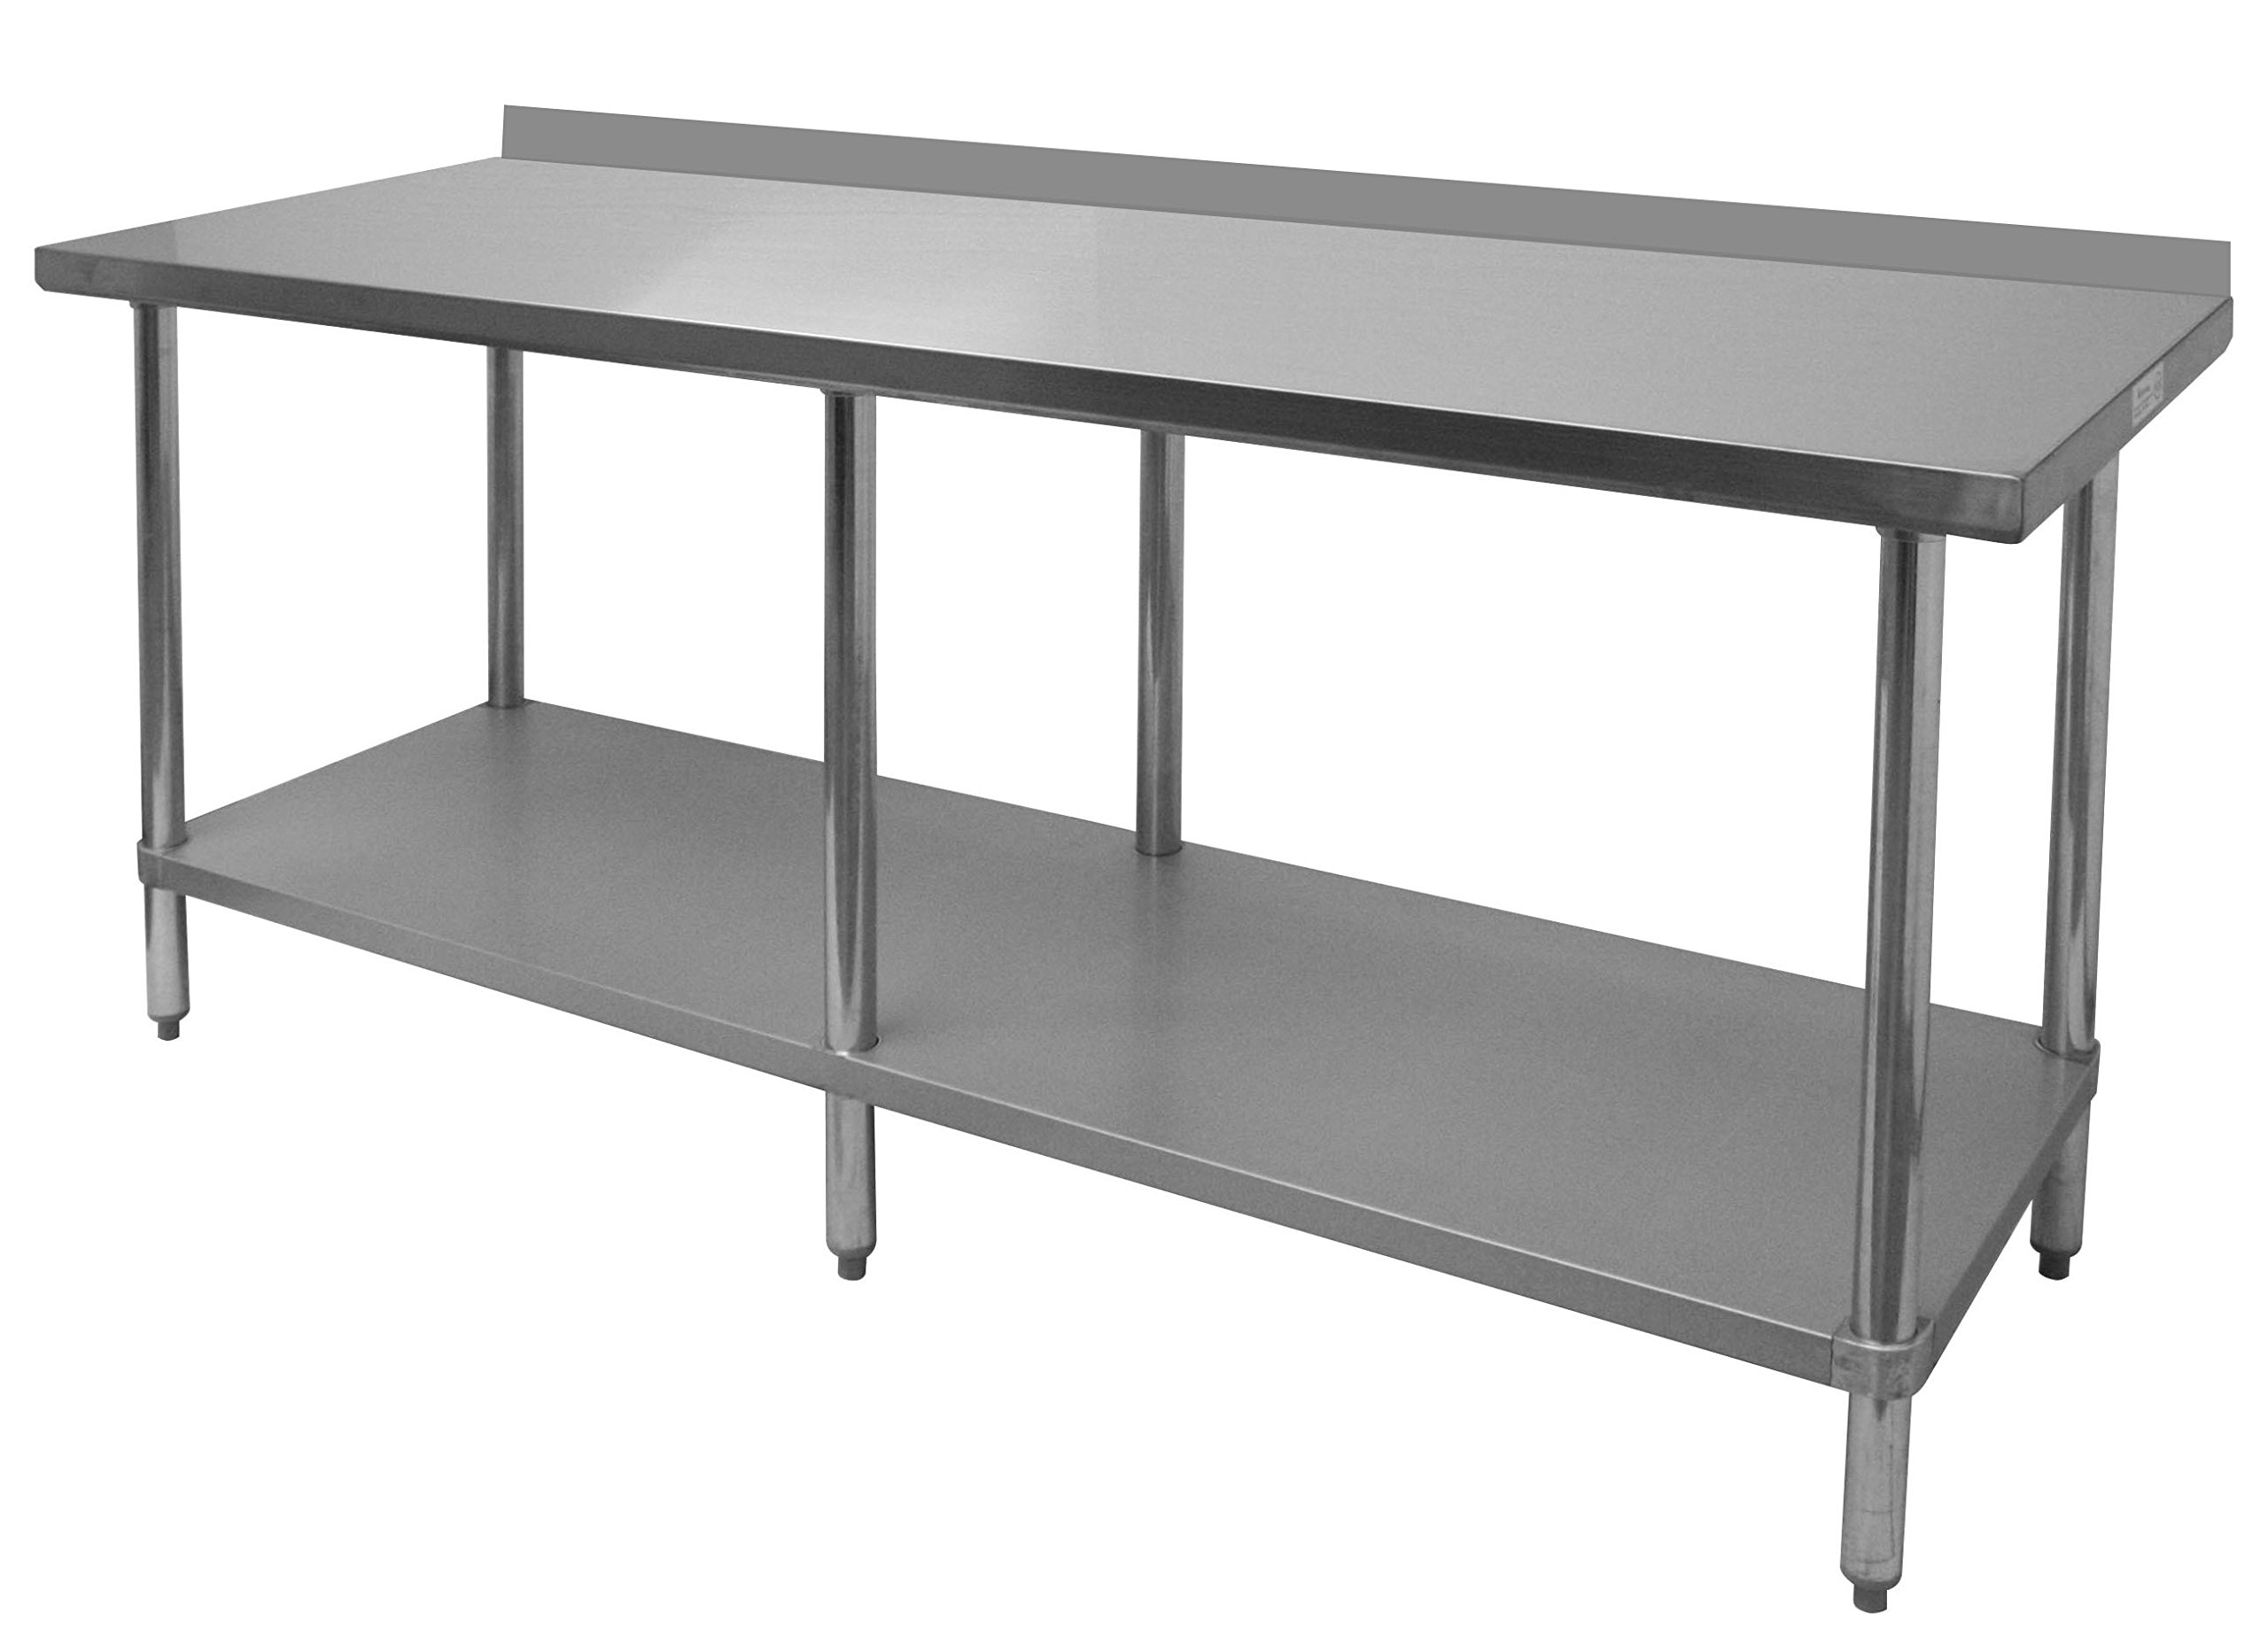 EquipmentBlvd Commercial Grade Flat Top Work Table with Stainless Steel Top & 3'' Dia. Casters for Restaurant, Home, Office, Kitchen or Garage, 30'' W x 96'' L x 35'' H, ETL or NSF Certified.